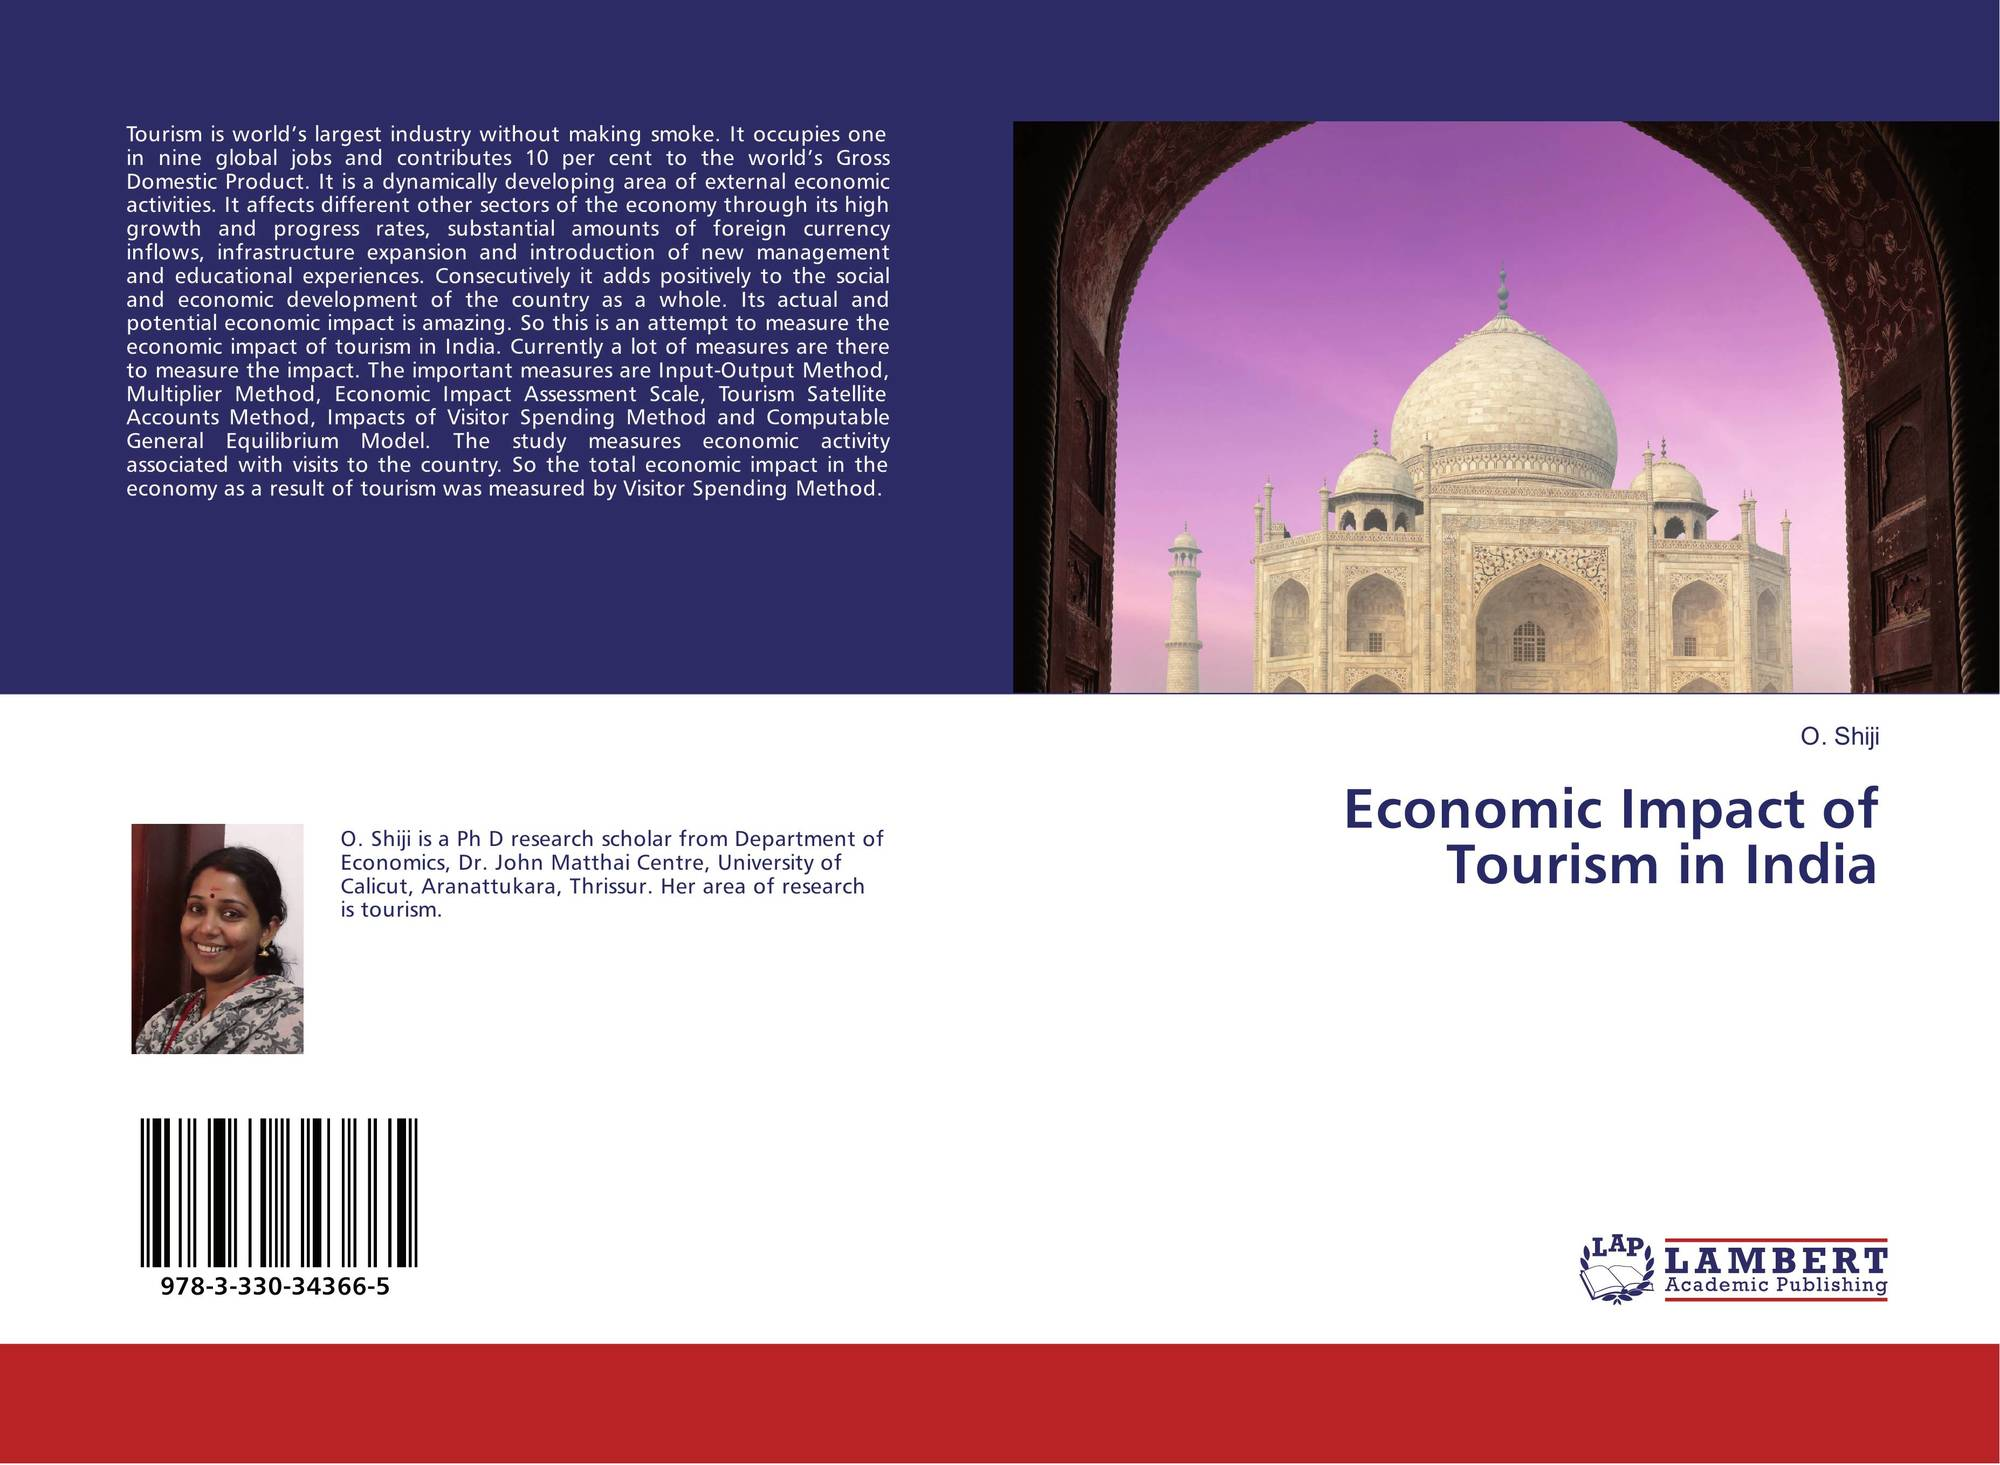 impacts of tourism on india Impact of tourism in india industry are to be realized tourism industry in india has several positive and negative impacts on the economy and society these impacts are negative impacts highlighted below 1 undesirable social and cultural change: tourism sometimes led to the destruction of the social fabric of a positive.